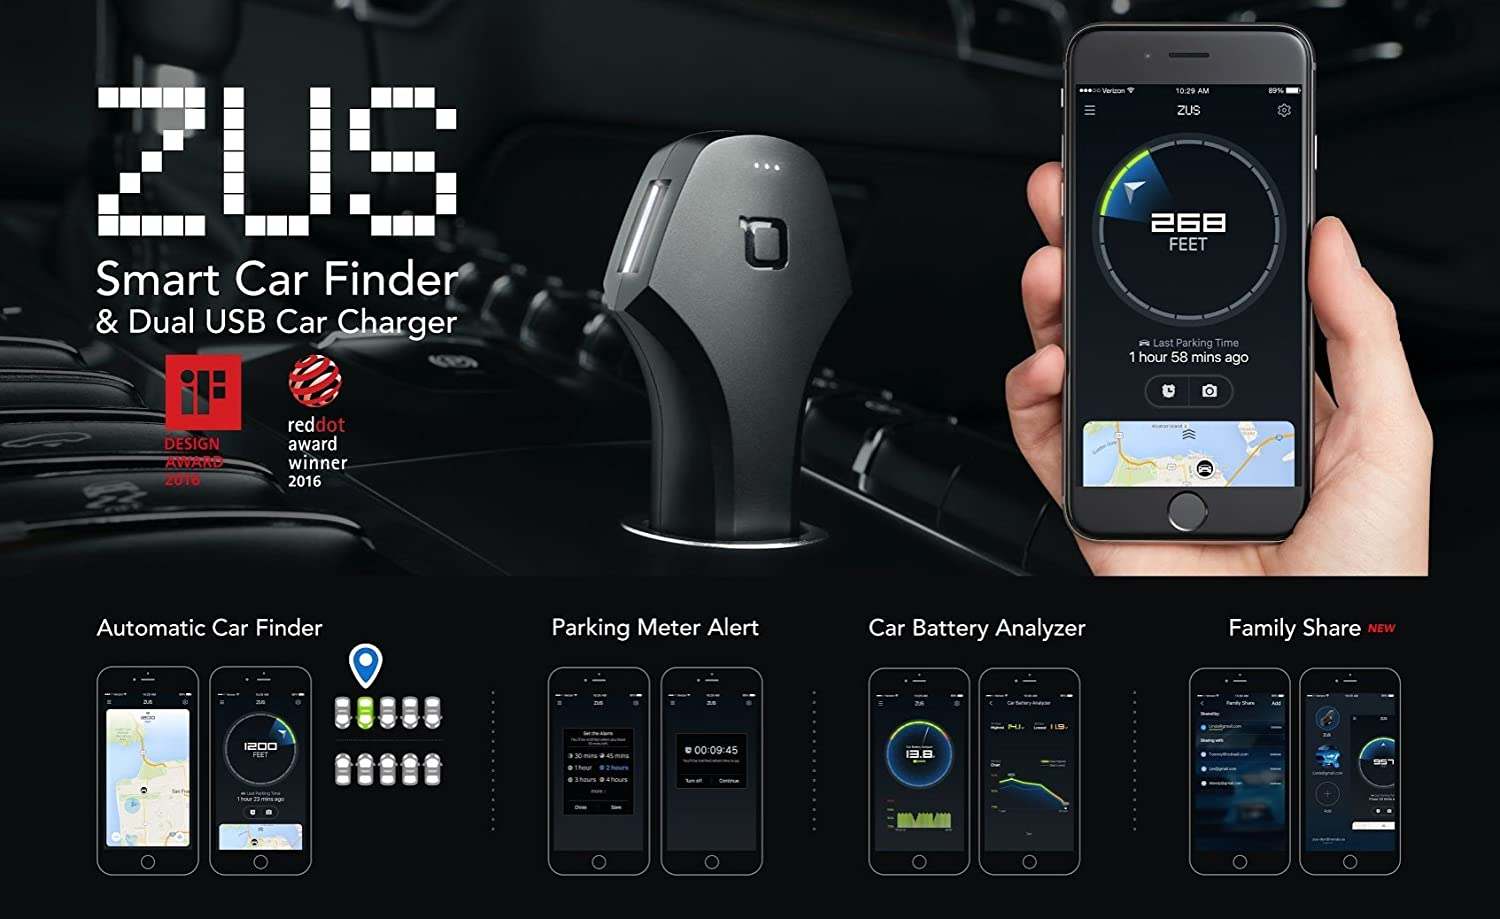 Amazon com nonda zus smart car locator usb car charger 24w 4 8a 2 ports black amazon launchpad